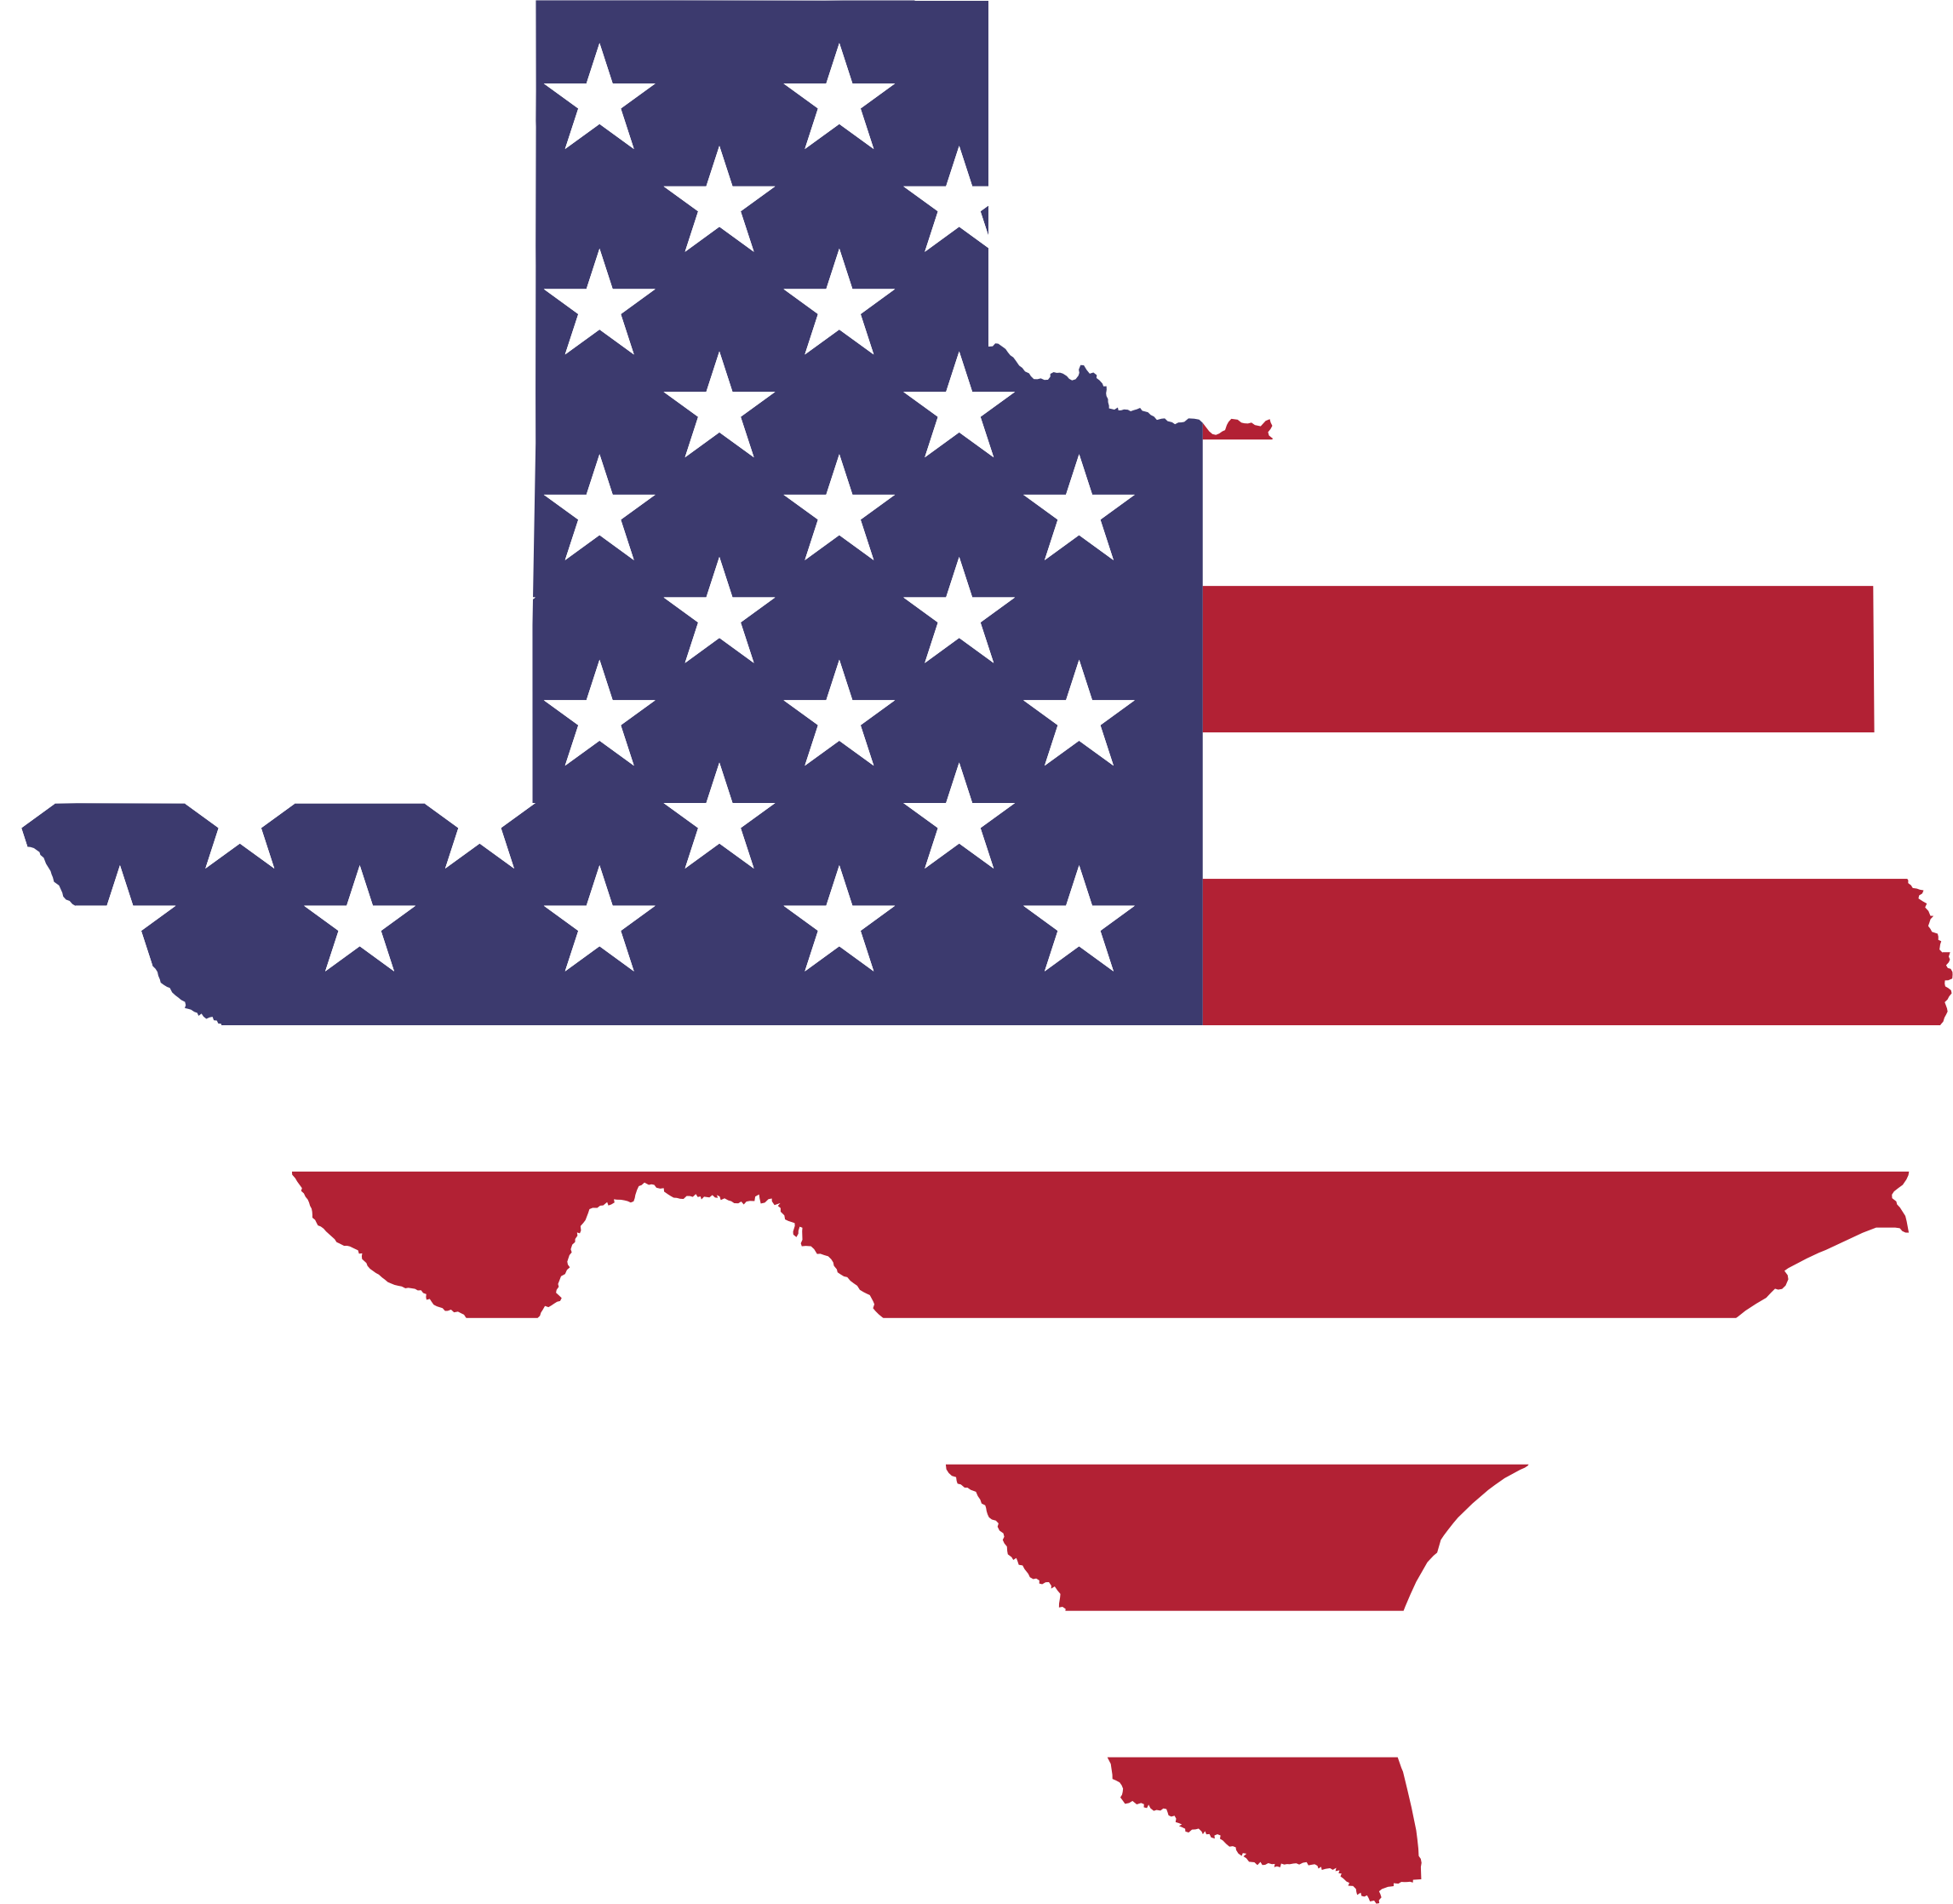 png transparent download American flag map no. Texas border clipart